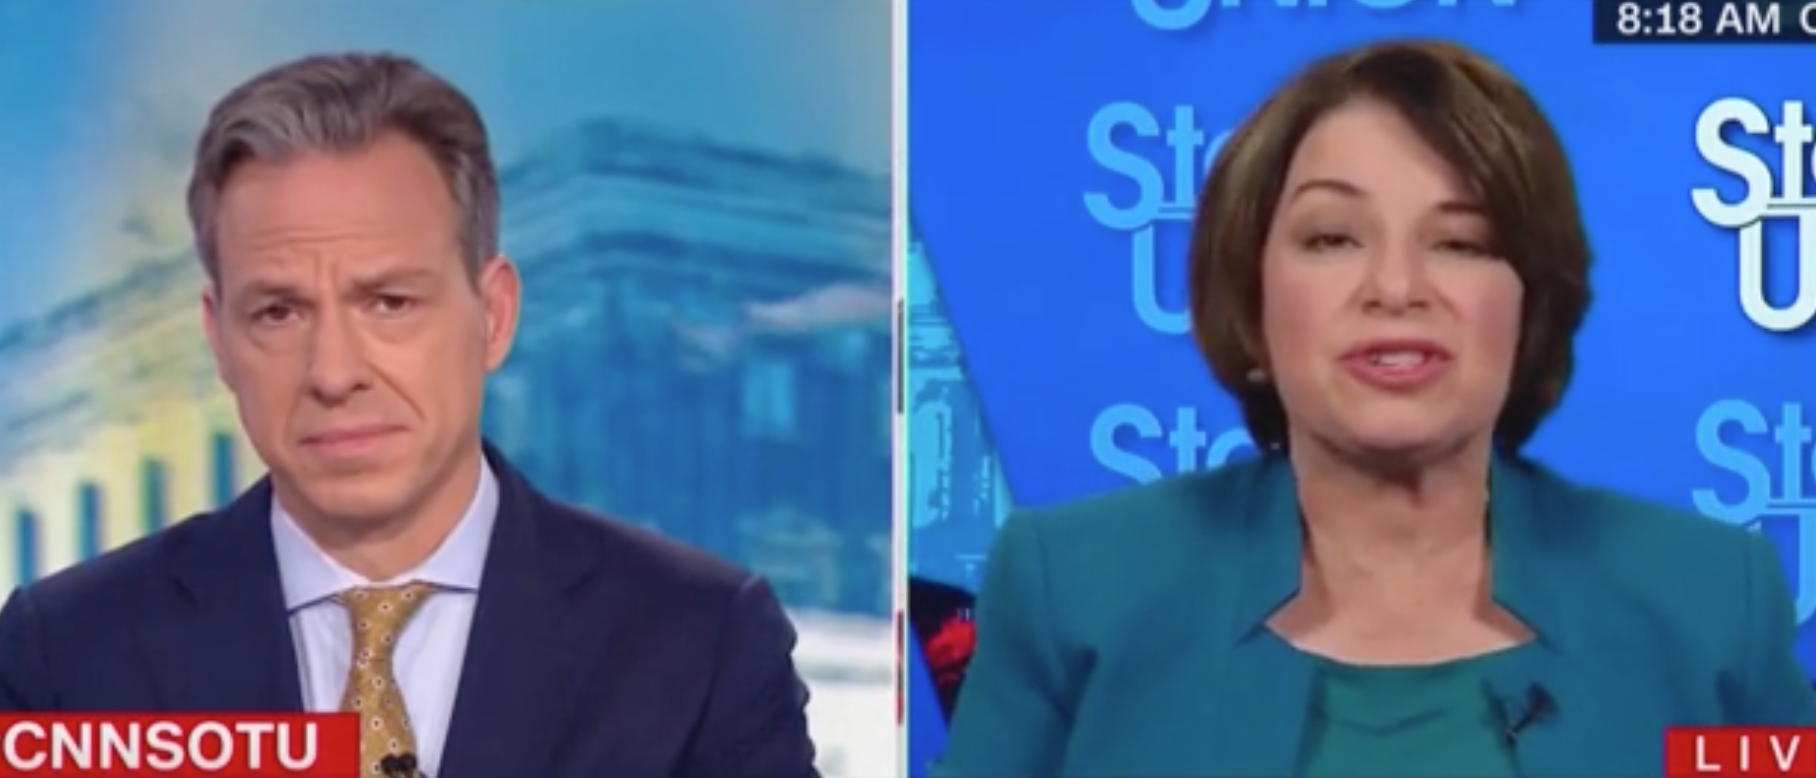 Impeachment Trial Or Campaign? Amy Klobuchar Tells Jake Tapper It's 'An Easy Question'